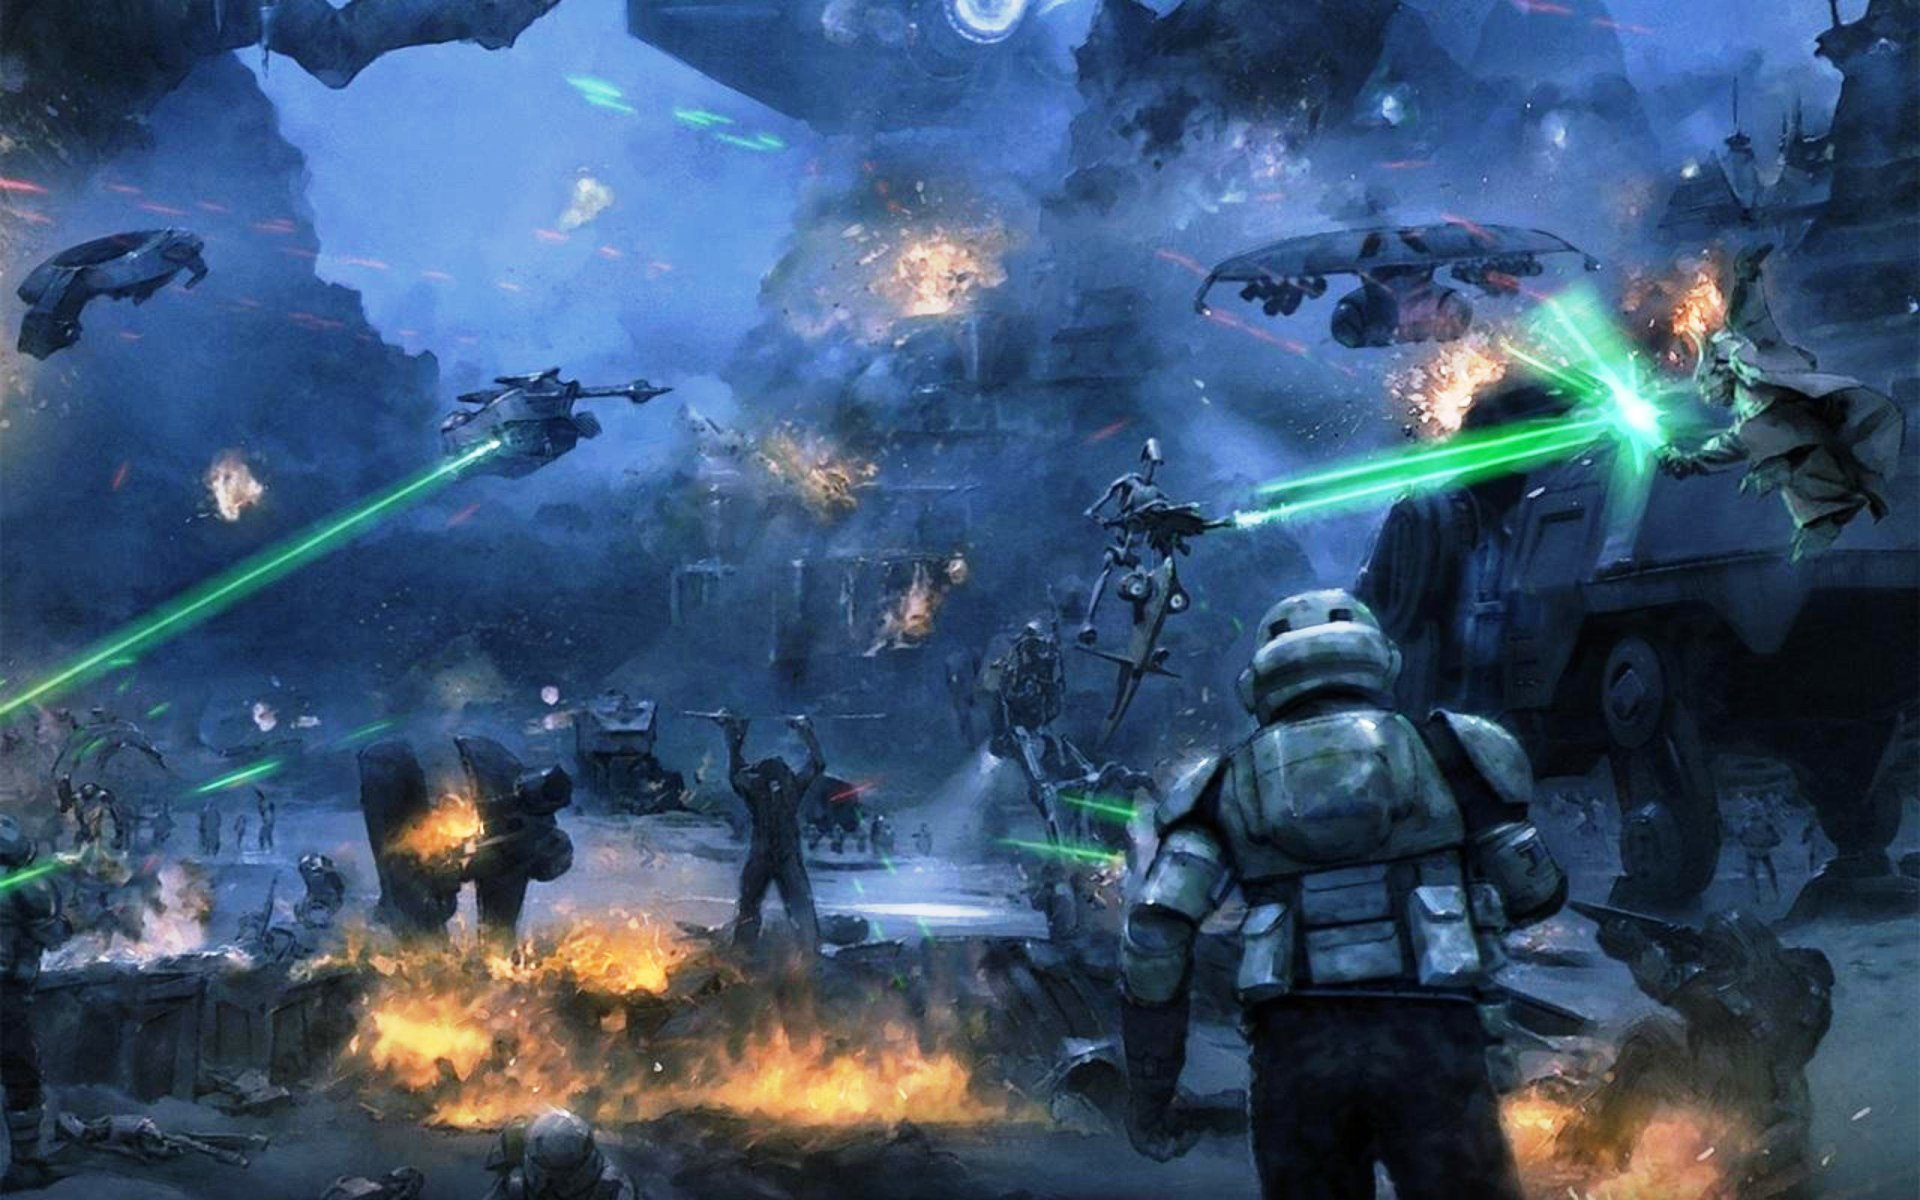 Star Wars Battle Of Kashyyyk 8613 Hd Wallpaper Backgrounds Download